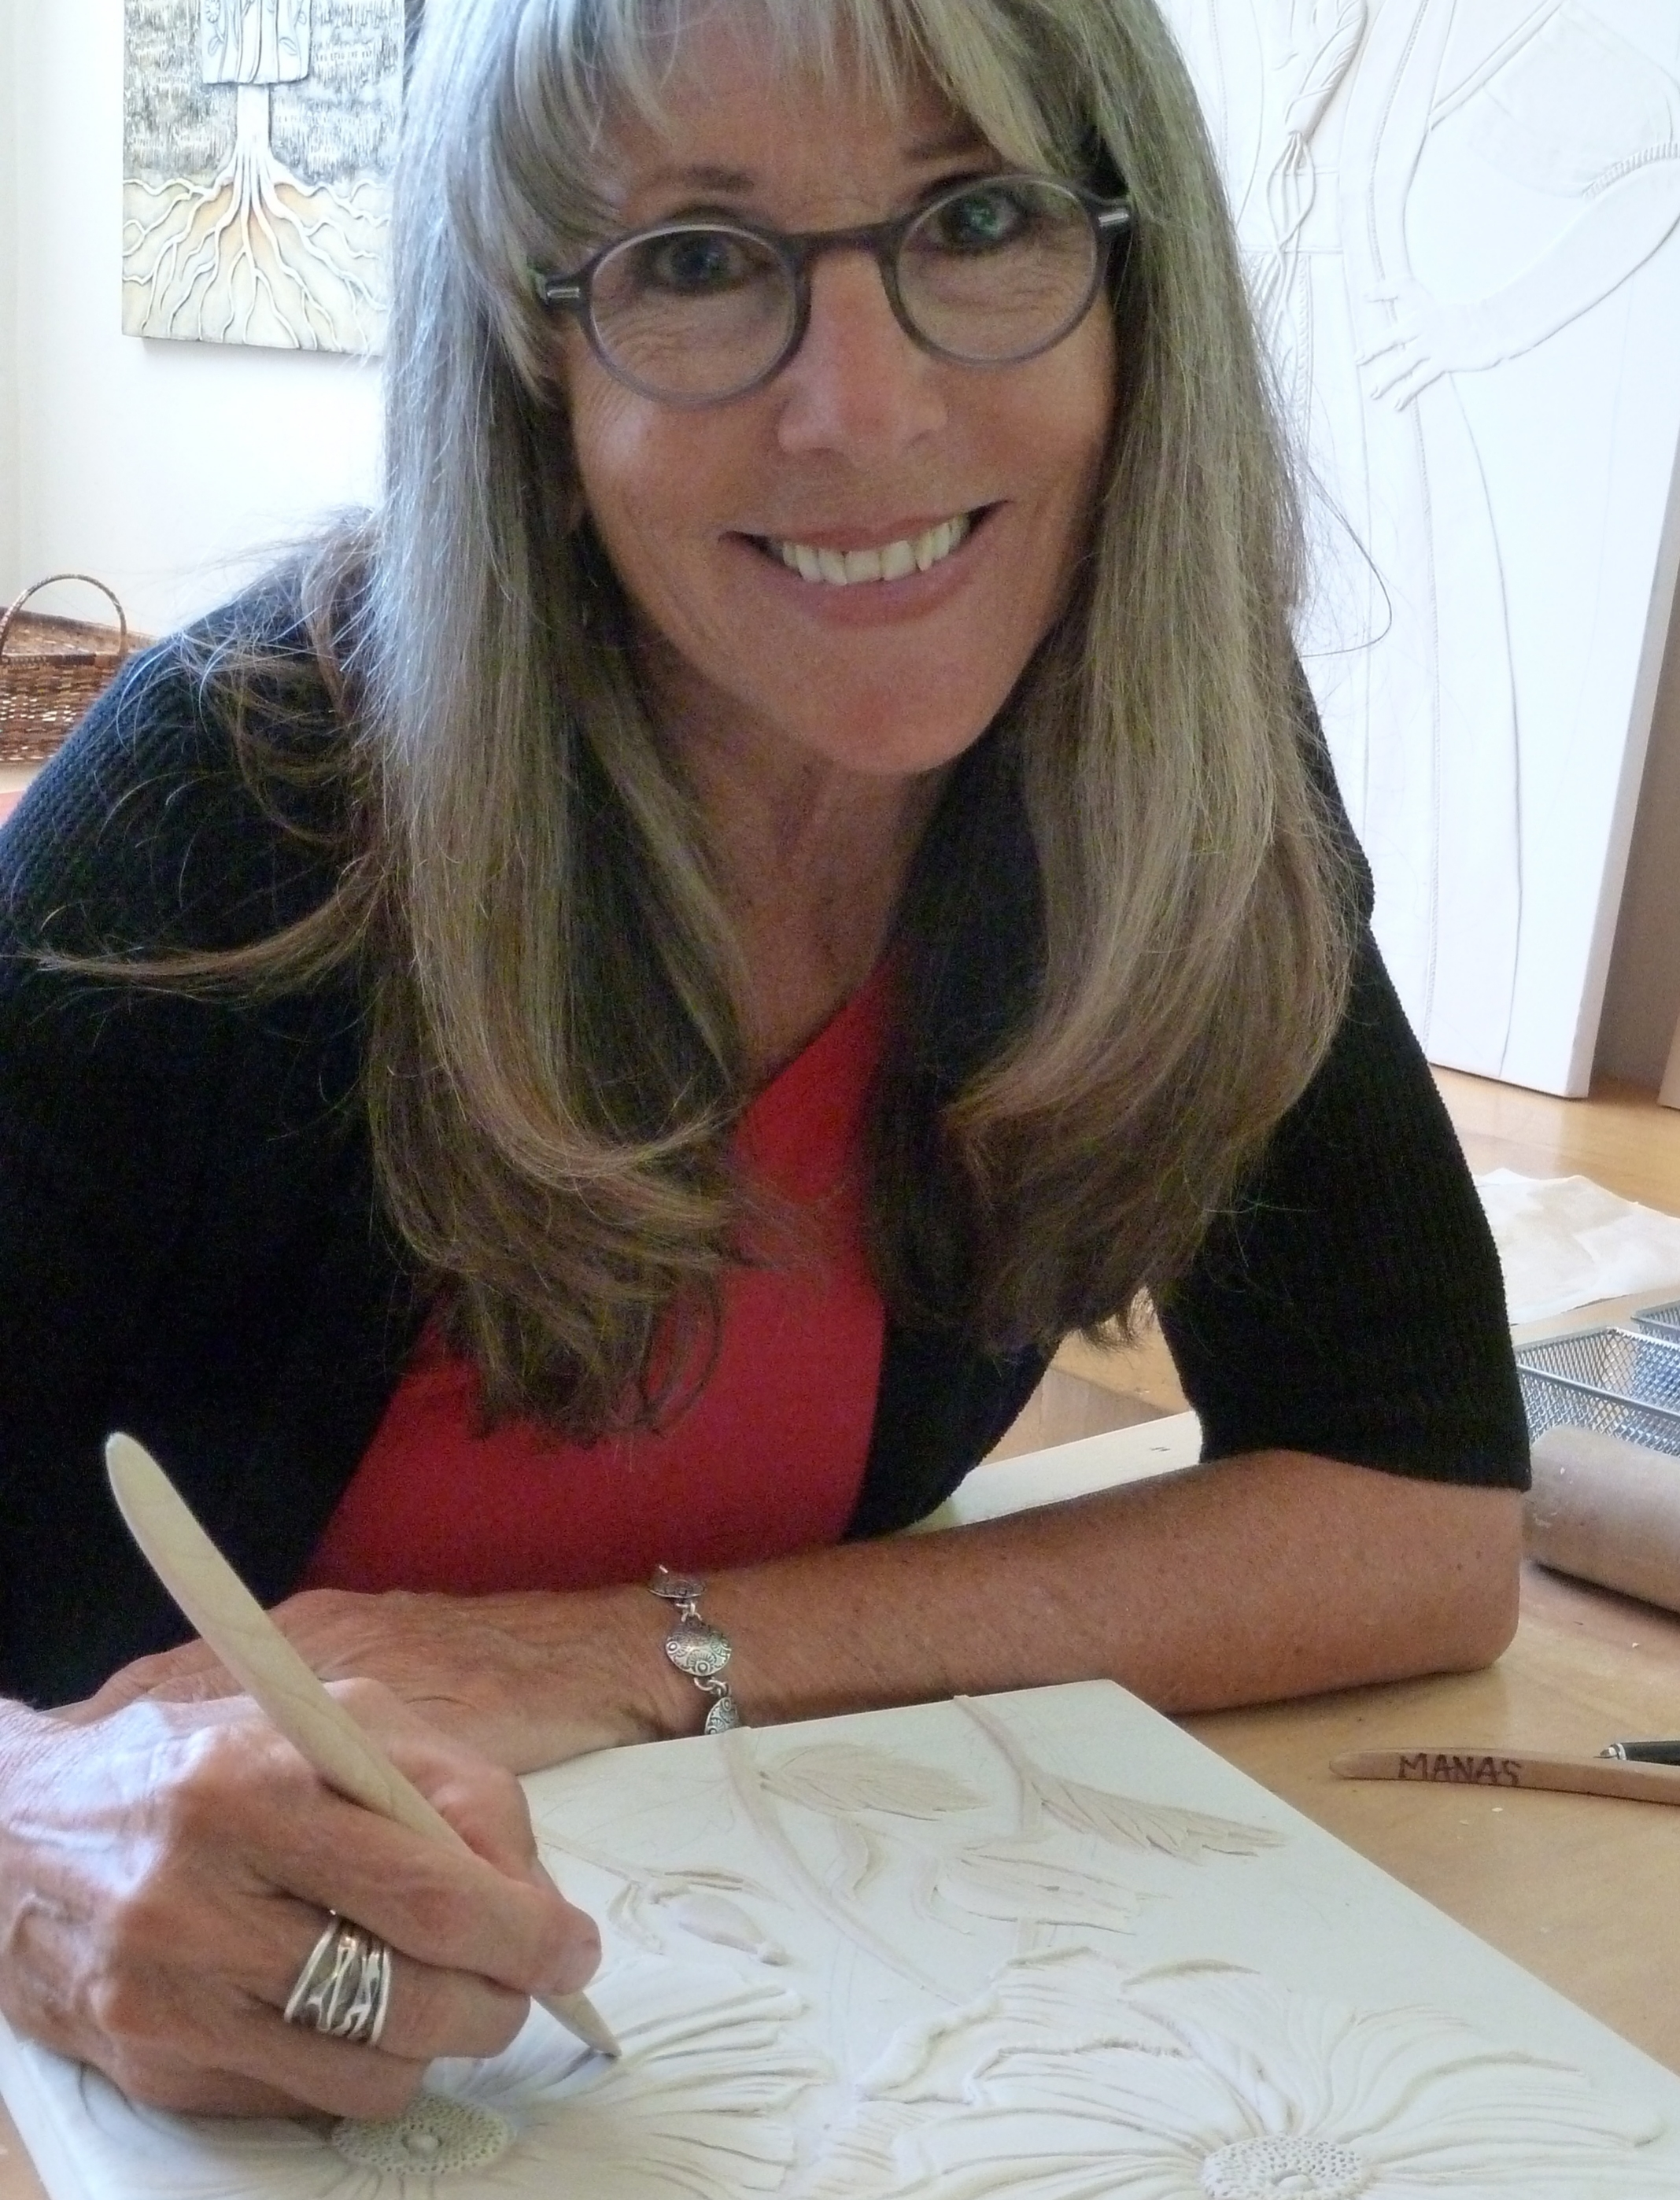 About her name...Rogene Manas...Rogene's last name is Mañas, her father was Spanish, and her mother was Italian. The family dropped the tilde when they came to the US in the early 1900's. She uses the original spelling on anything to do with her artwork to honor her heritage, but does not use it in the rest of her life. So she signs her work as Mañas, but when looking for her on the web, it's Manas.